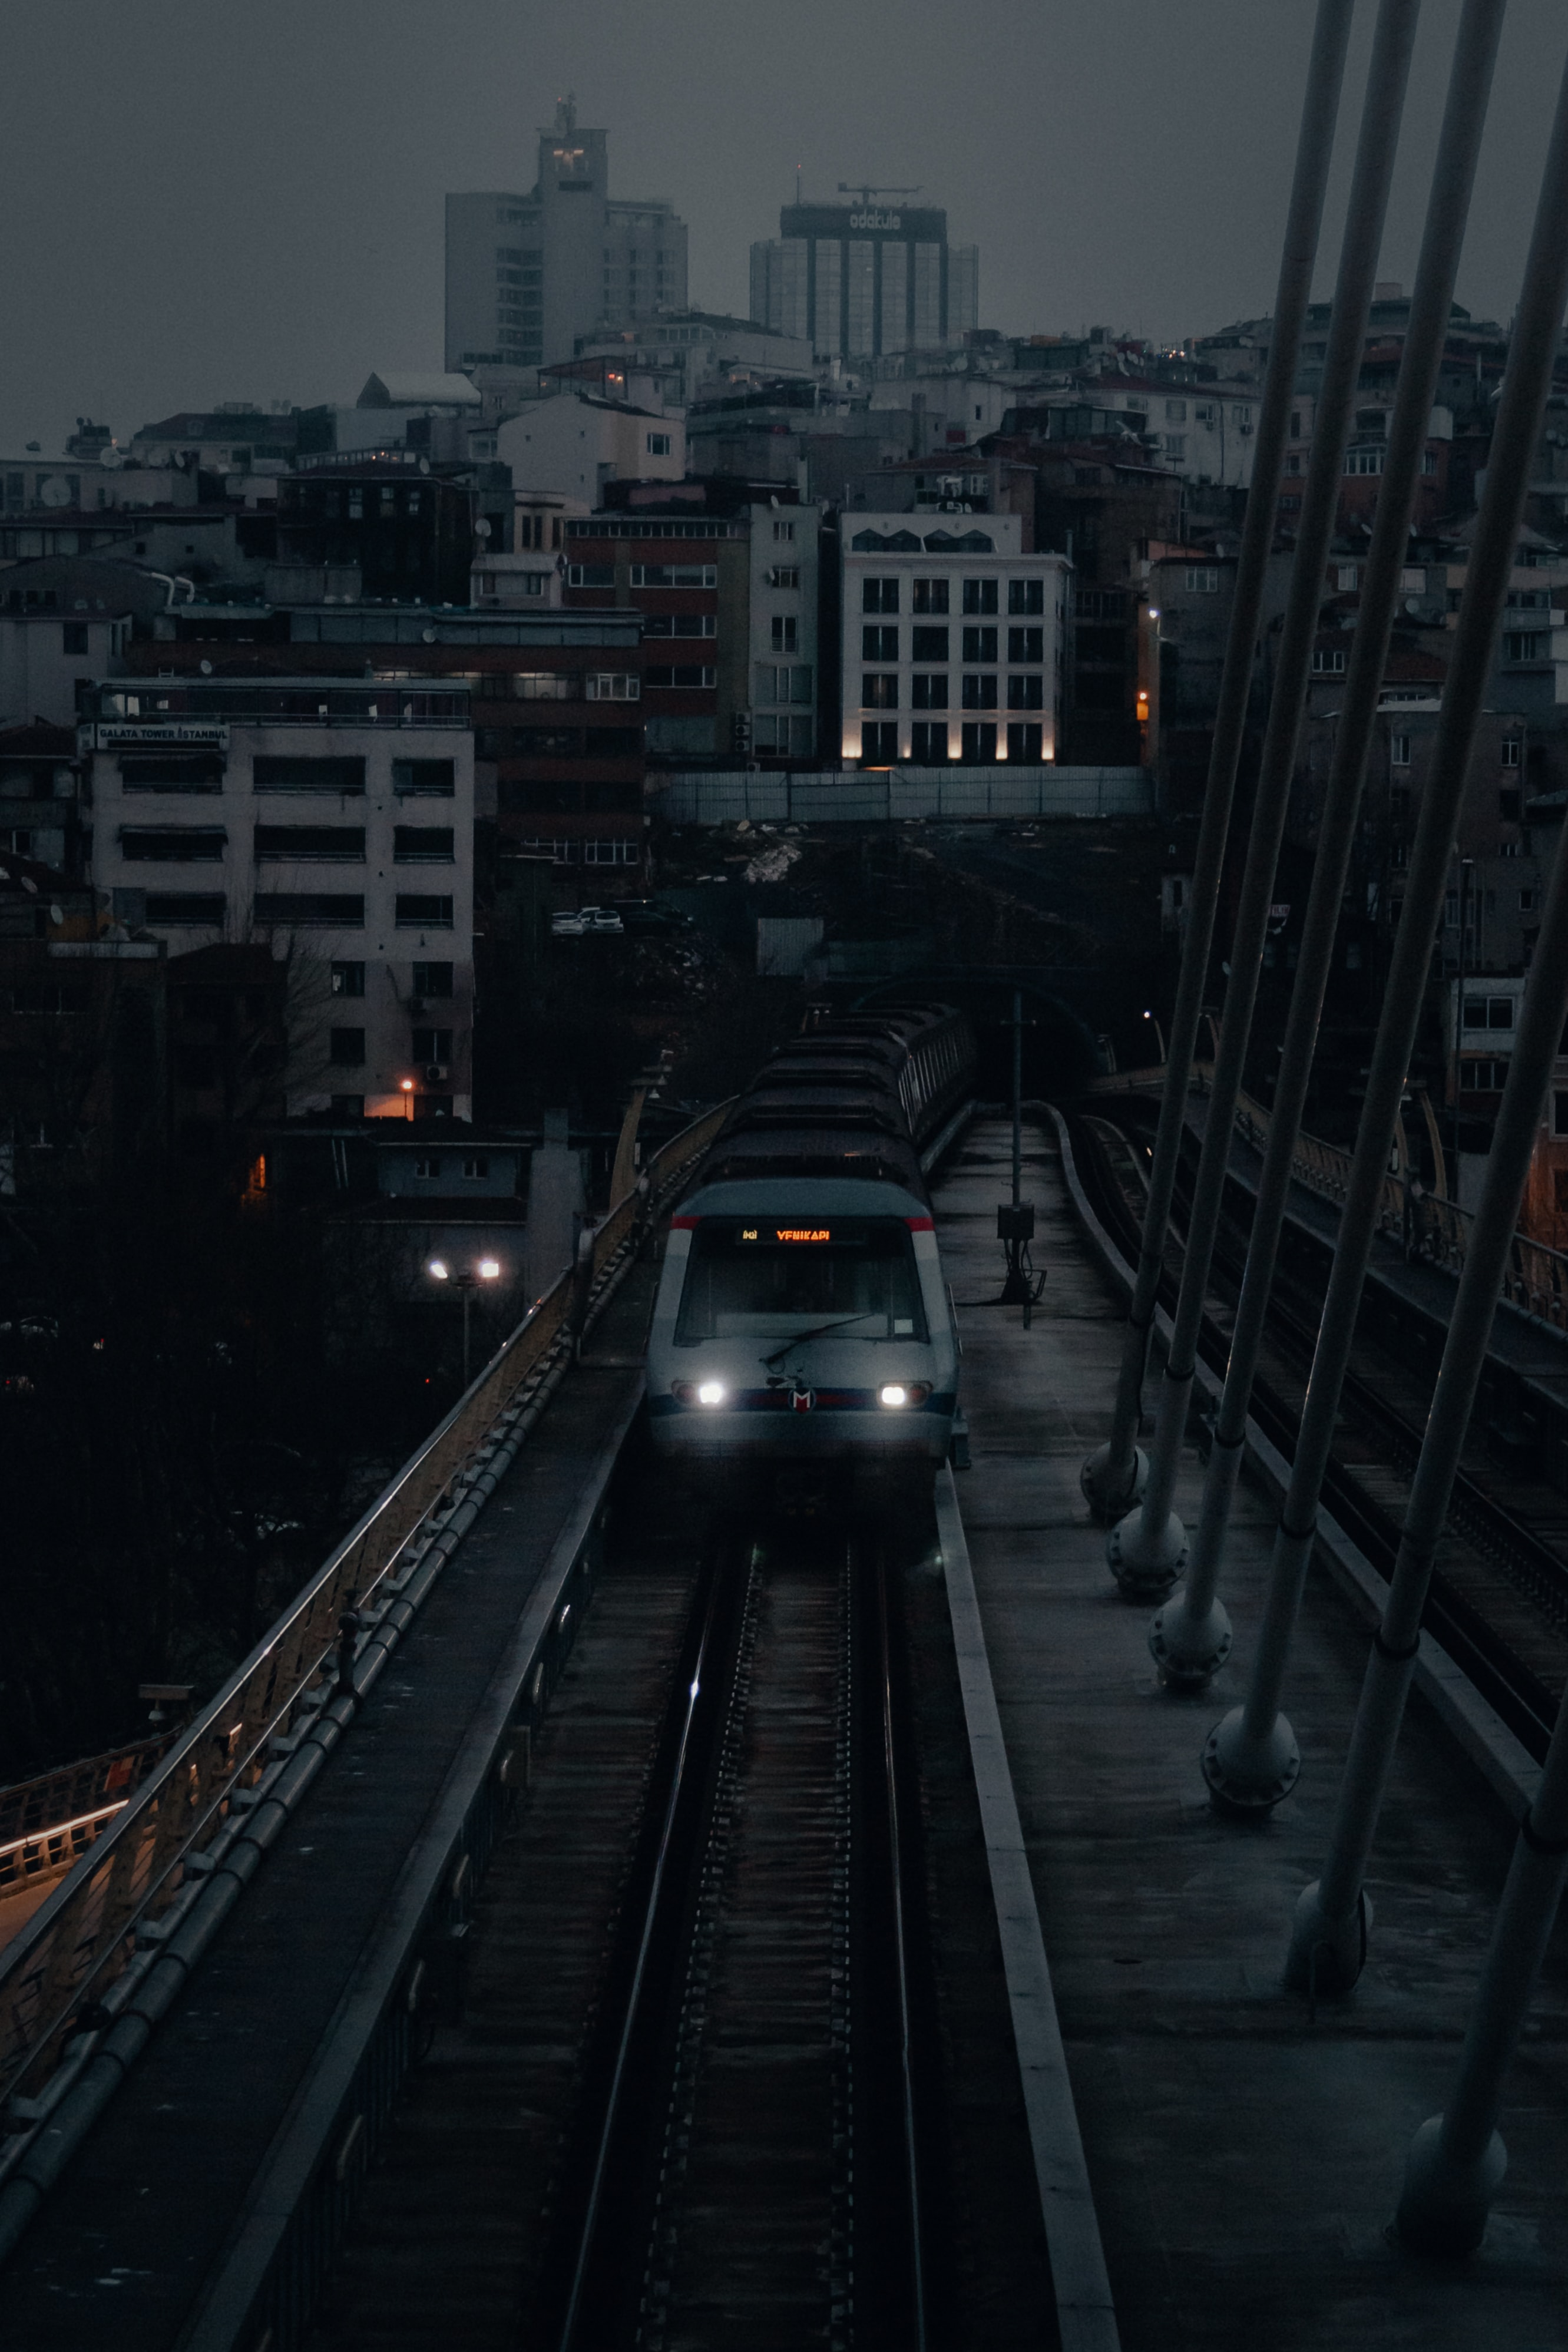 104892 download wallpaper City, Railway, Train, Building, Dusk, Twilight, Cities screensavers and pictures for free